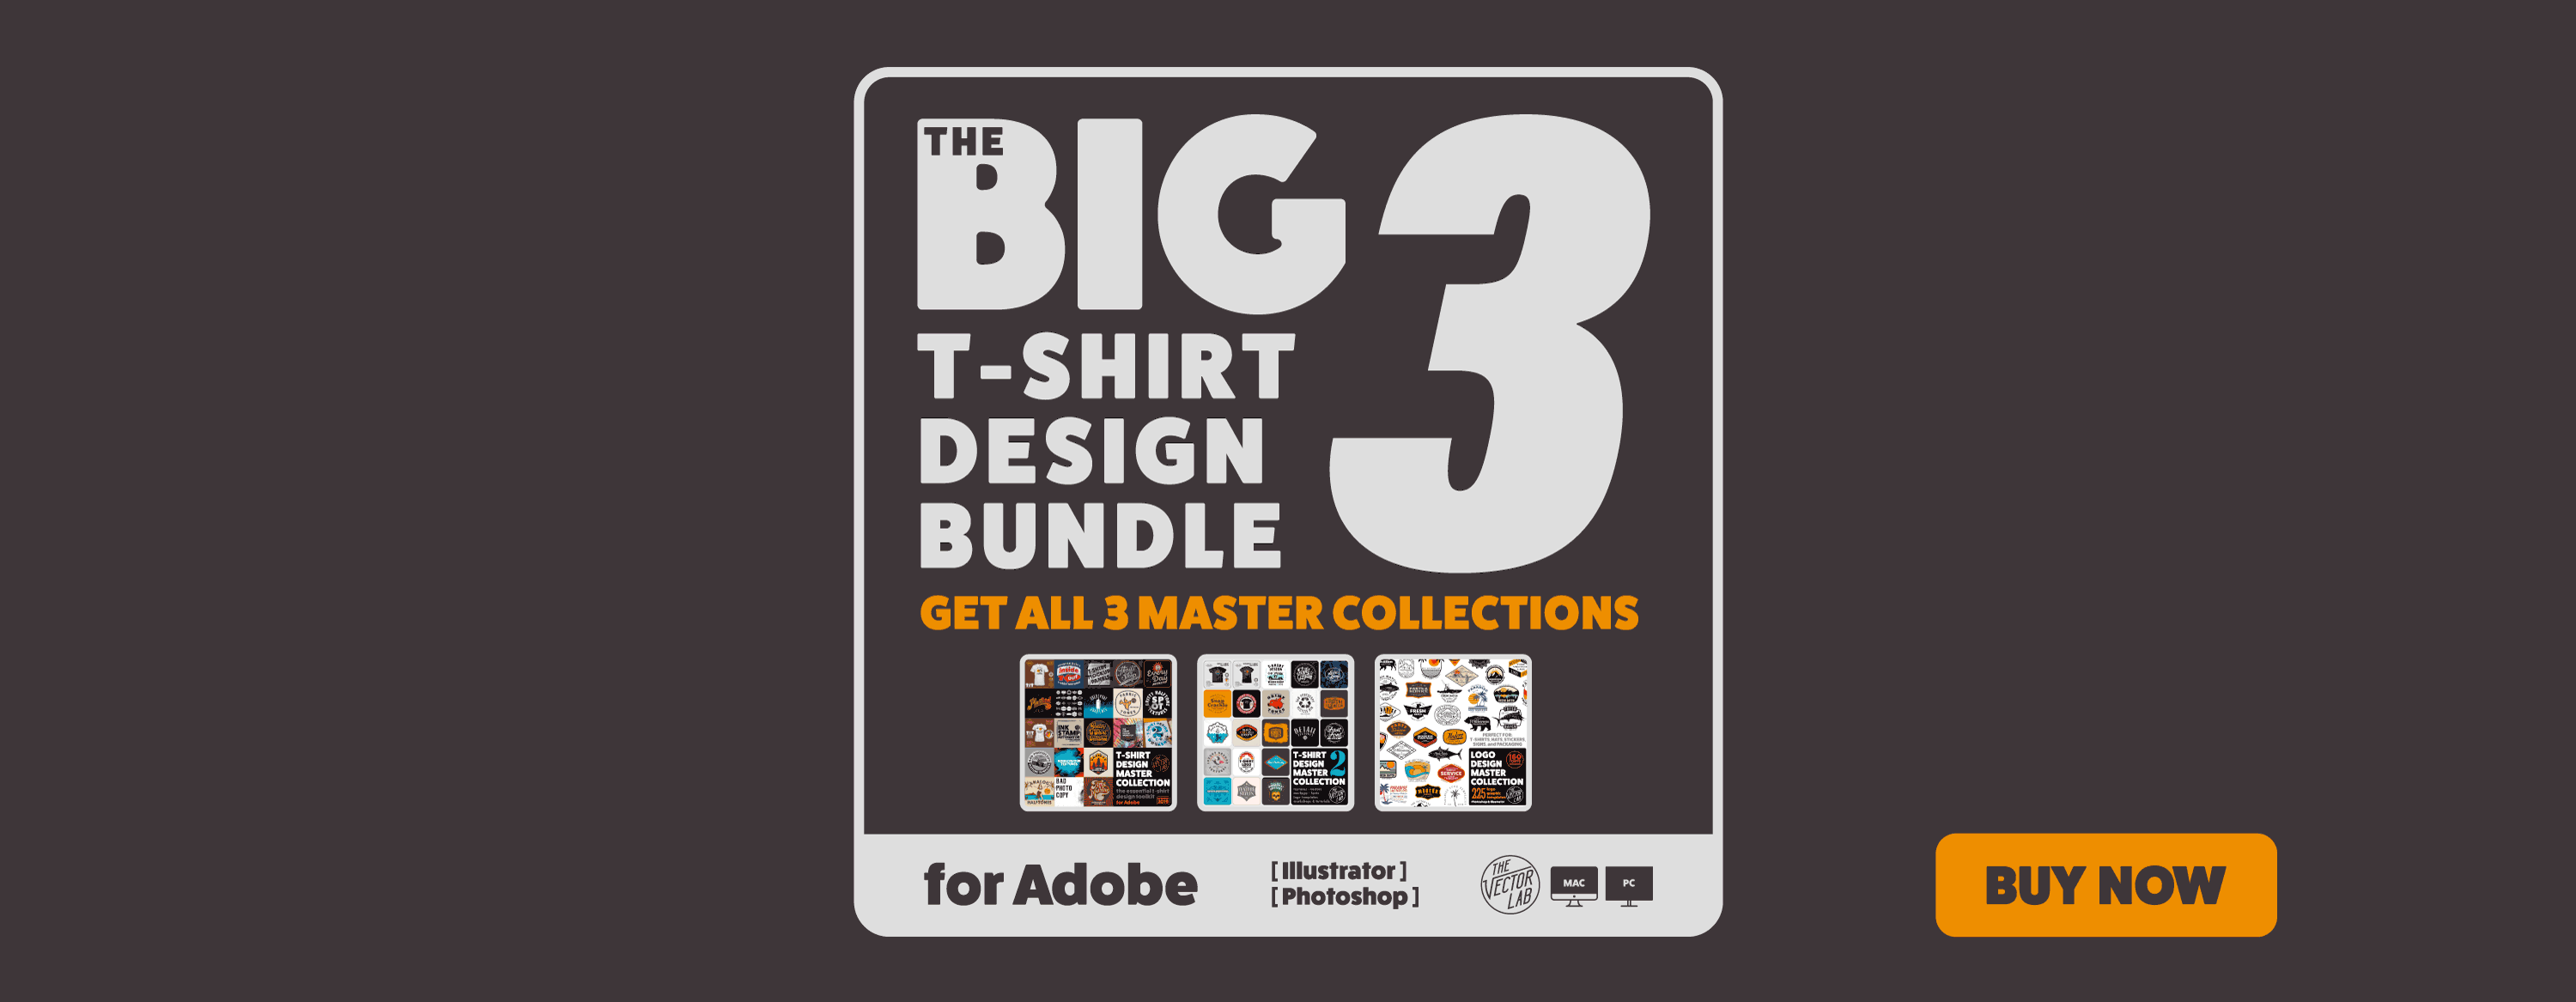 Get all 3 Master Collections: The Big 3 Bundle for Adobe